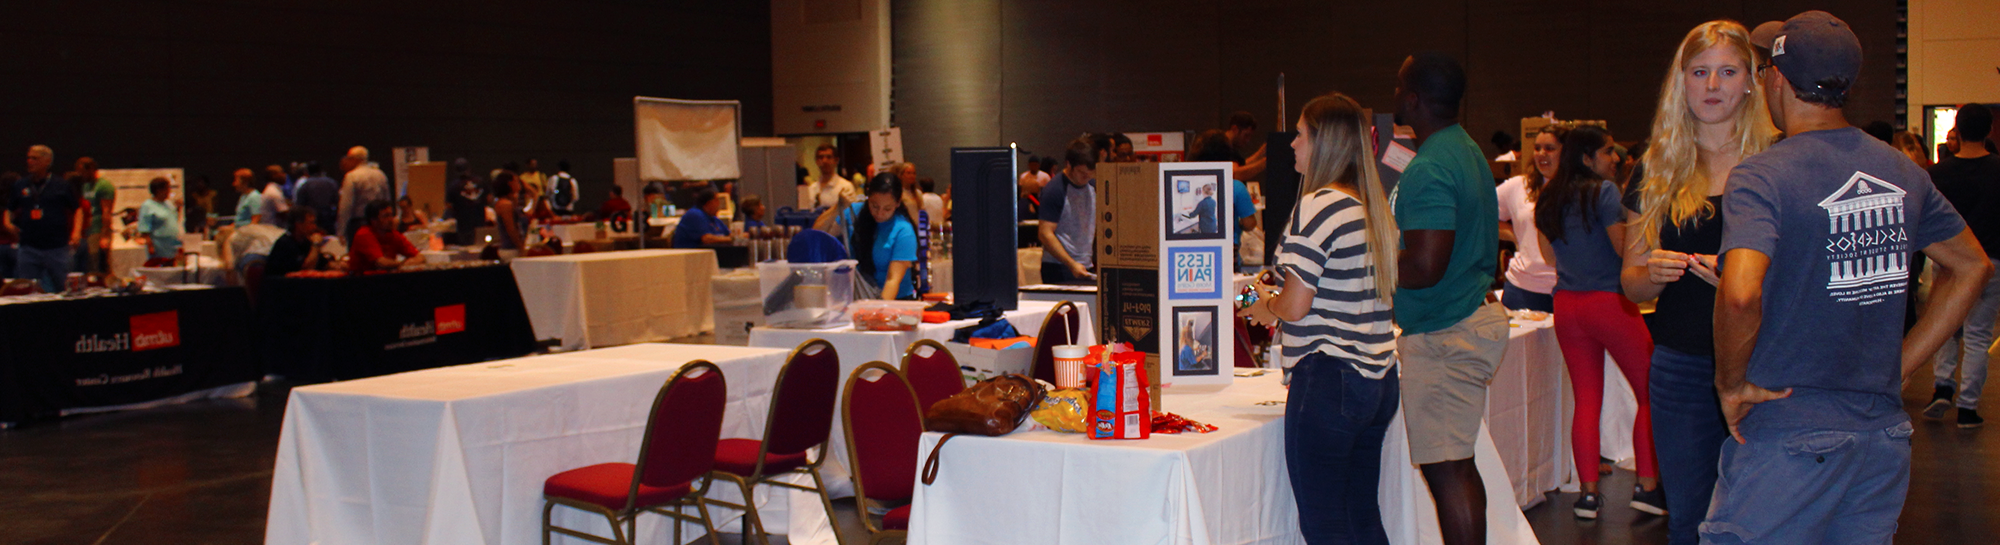 Students promote their organizations at the annual Community Fair